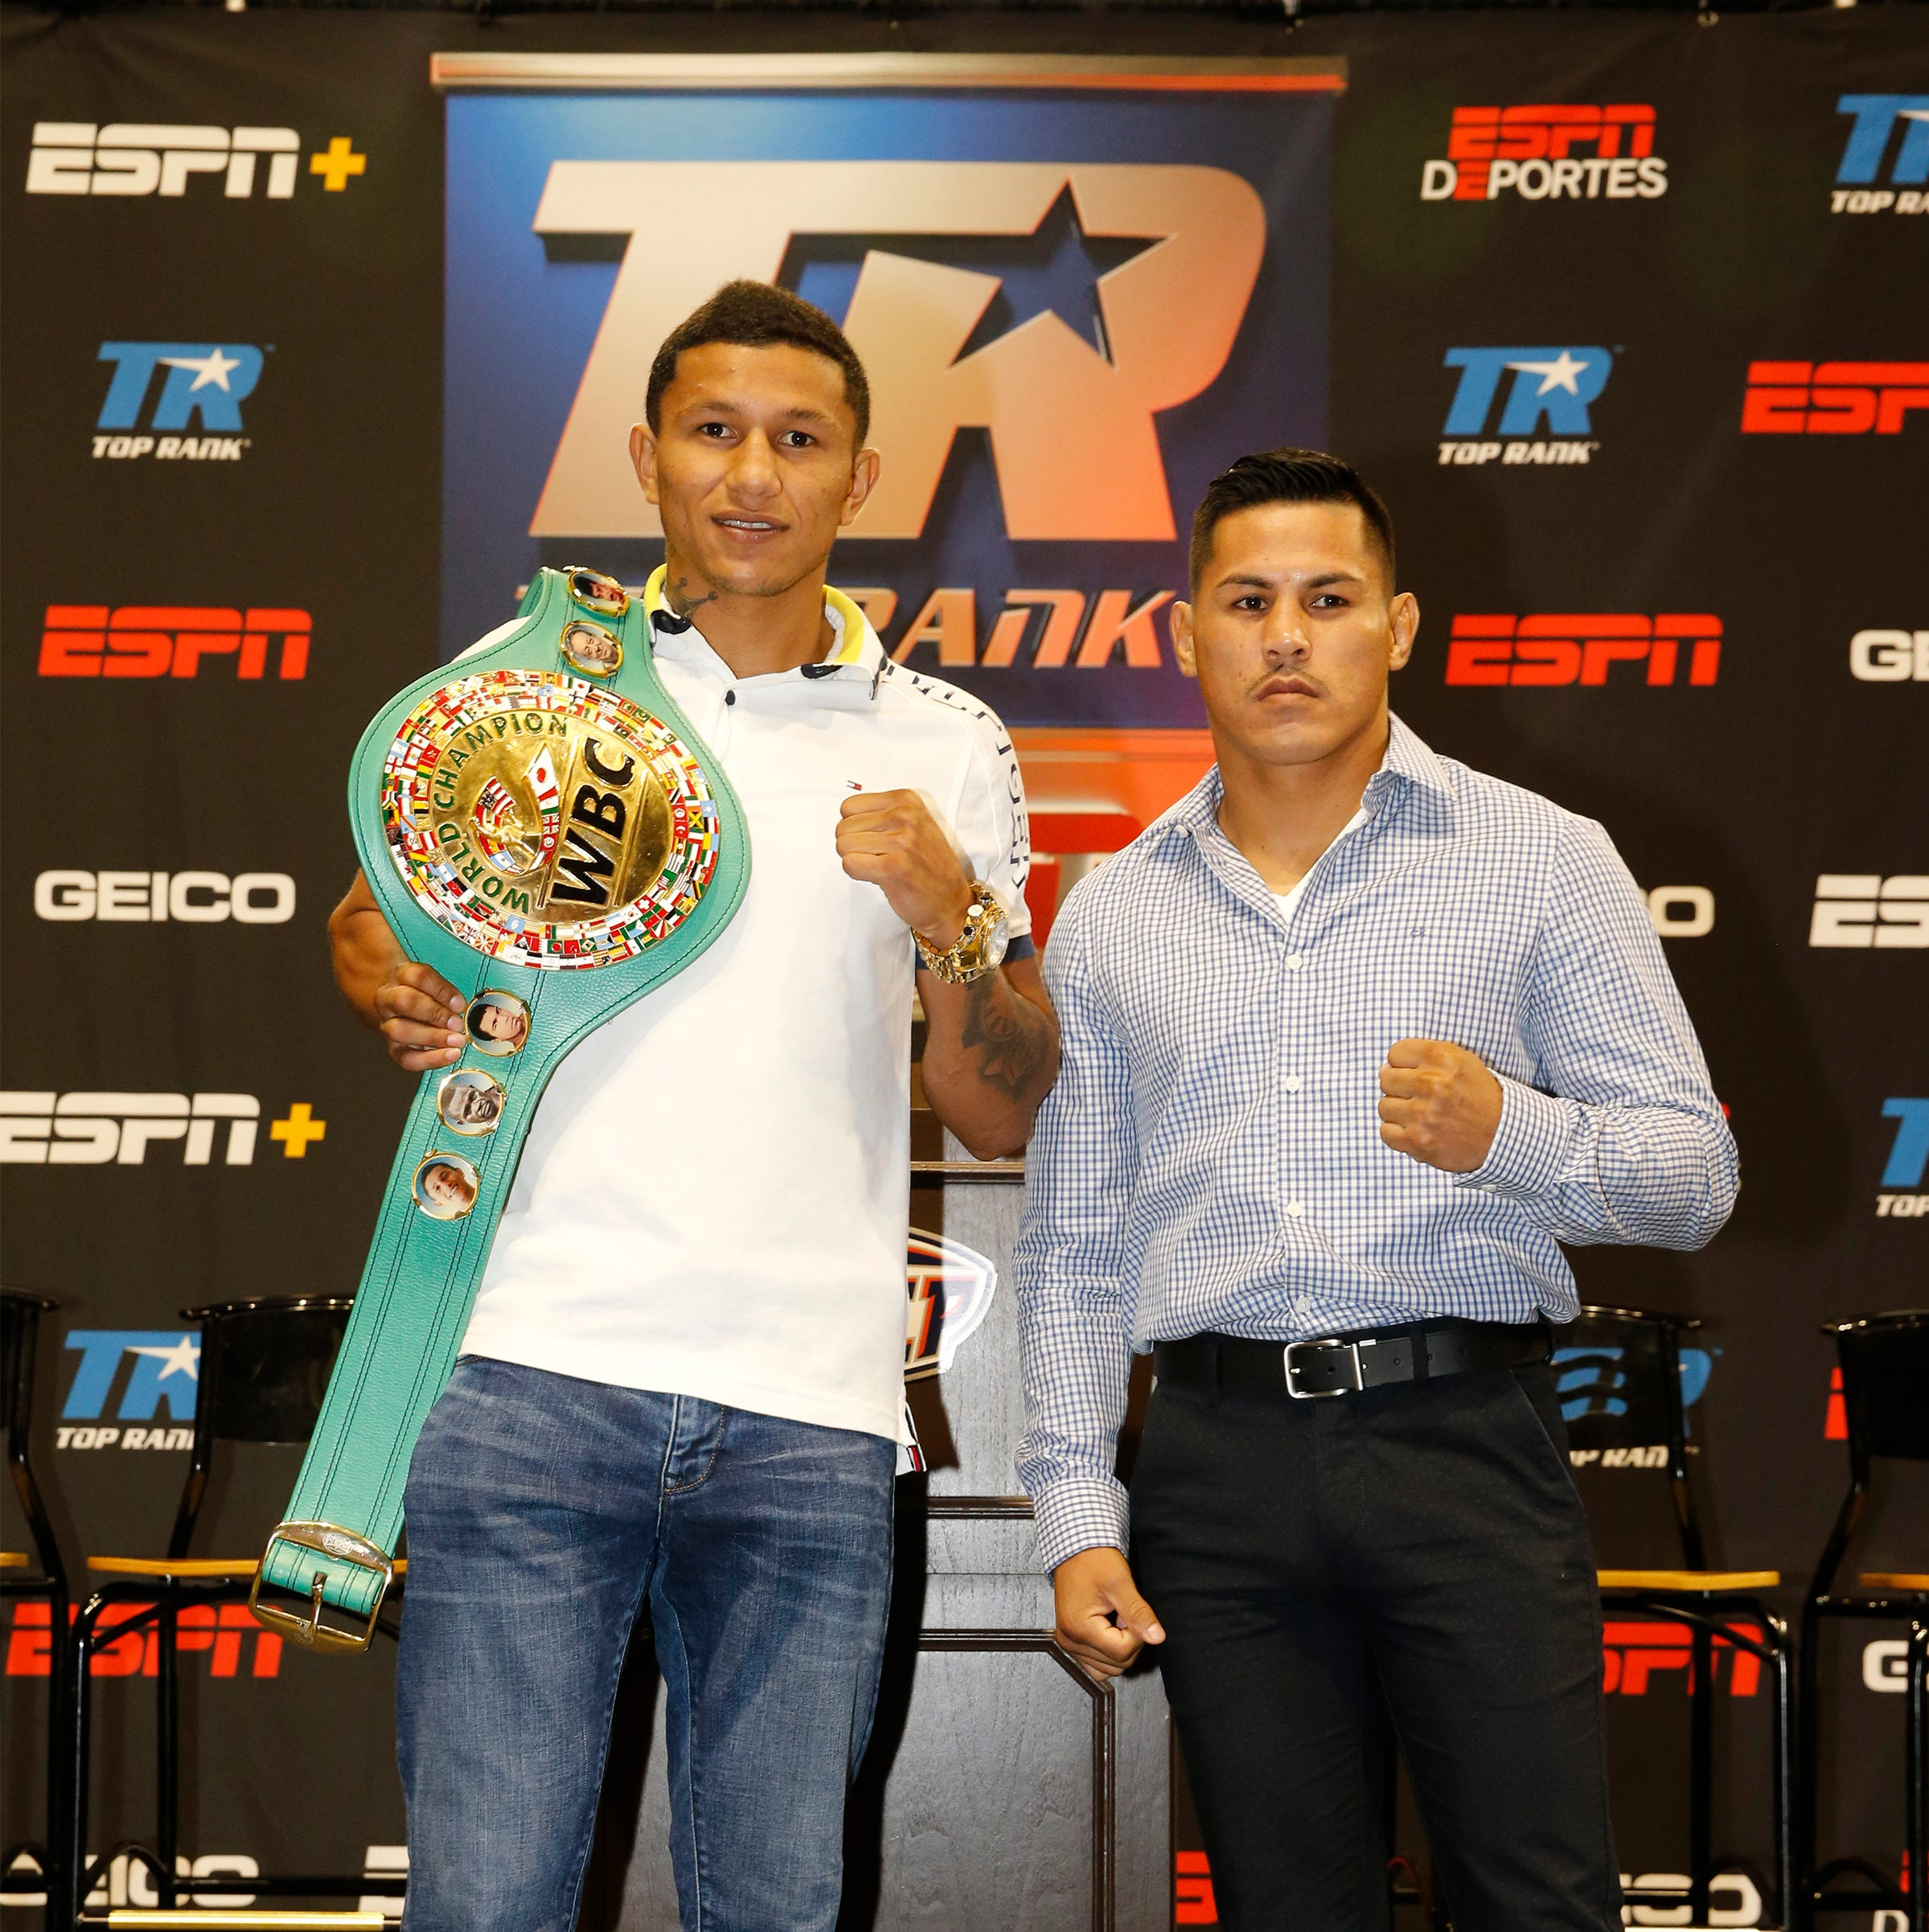 Tickets for Berchelt-Roman WBC boxing title fight in El Paso go on sale